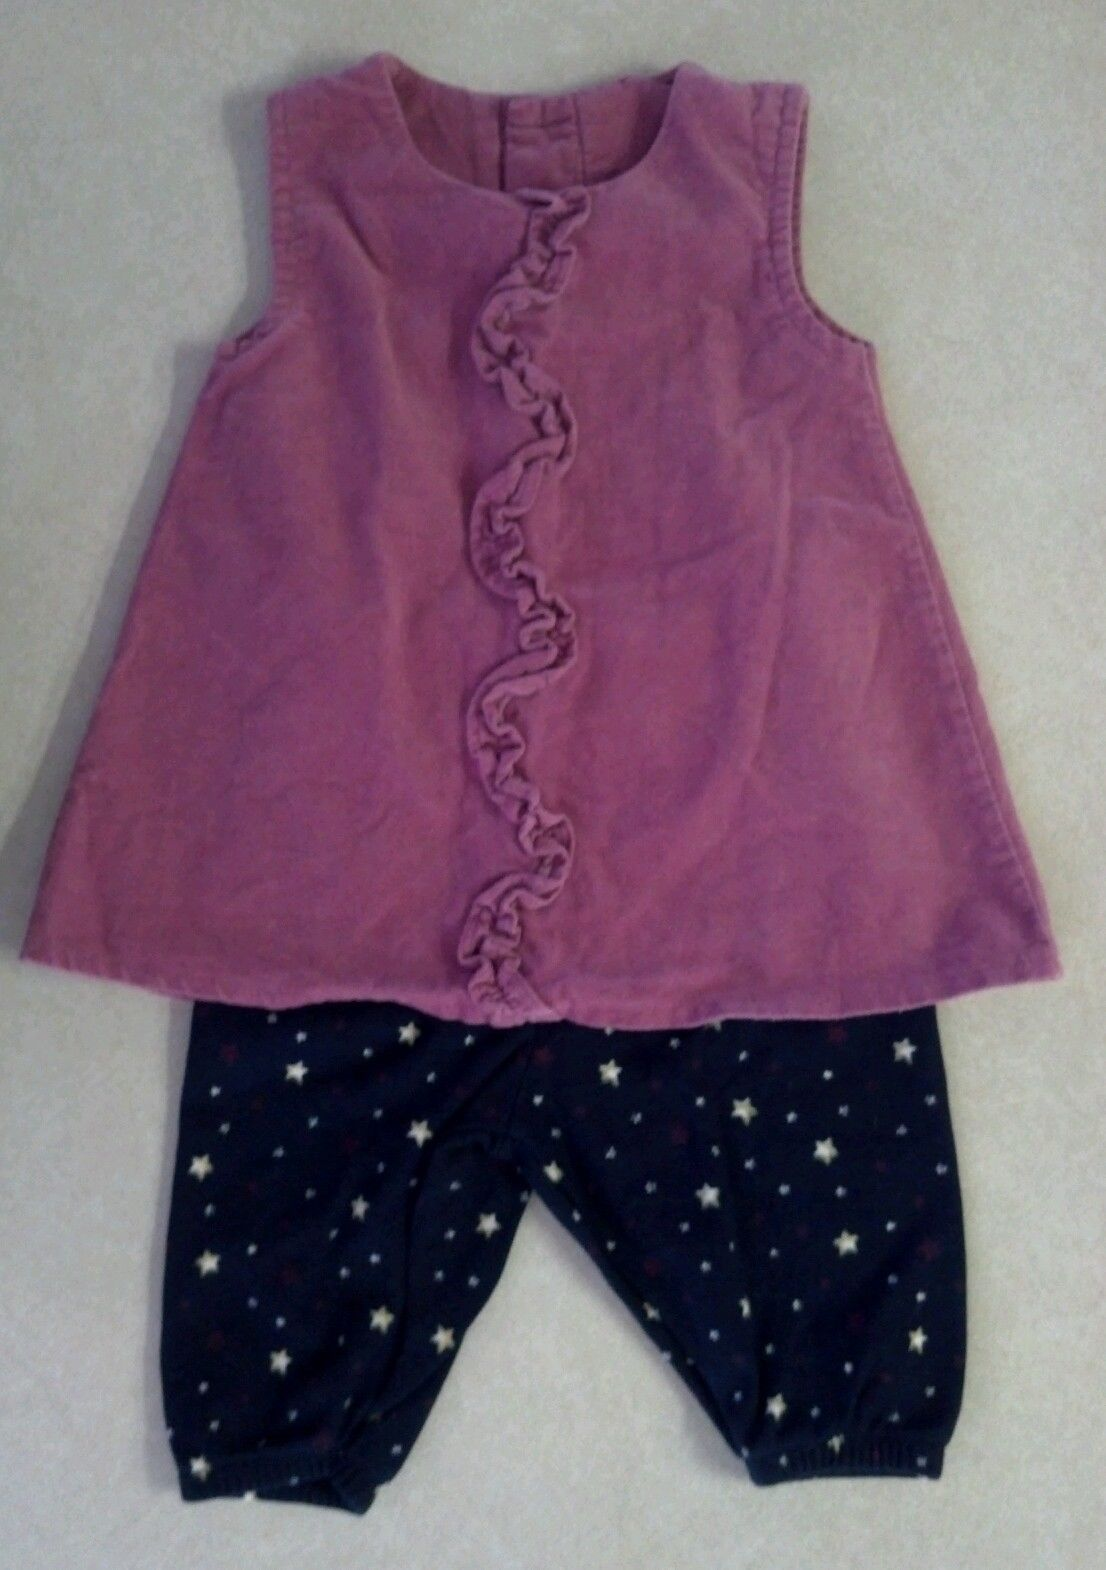 Cute Girl's Size 0-3 M Months Two Piece Outfit Pink Ruffled Top & Star Pants